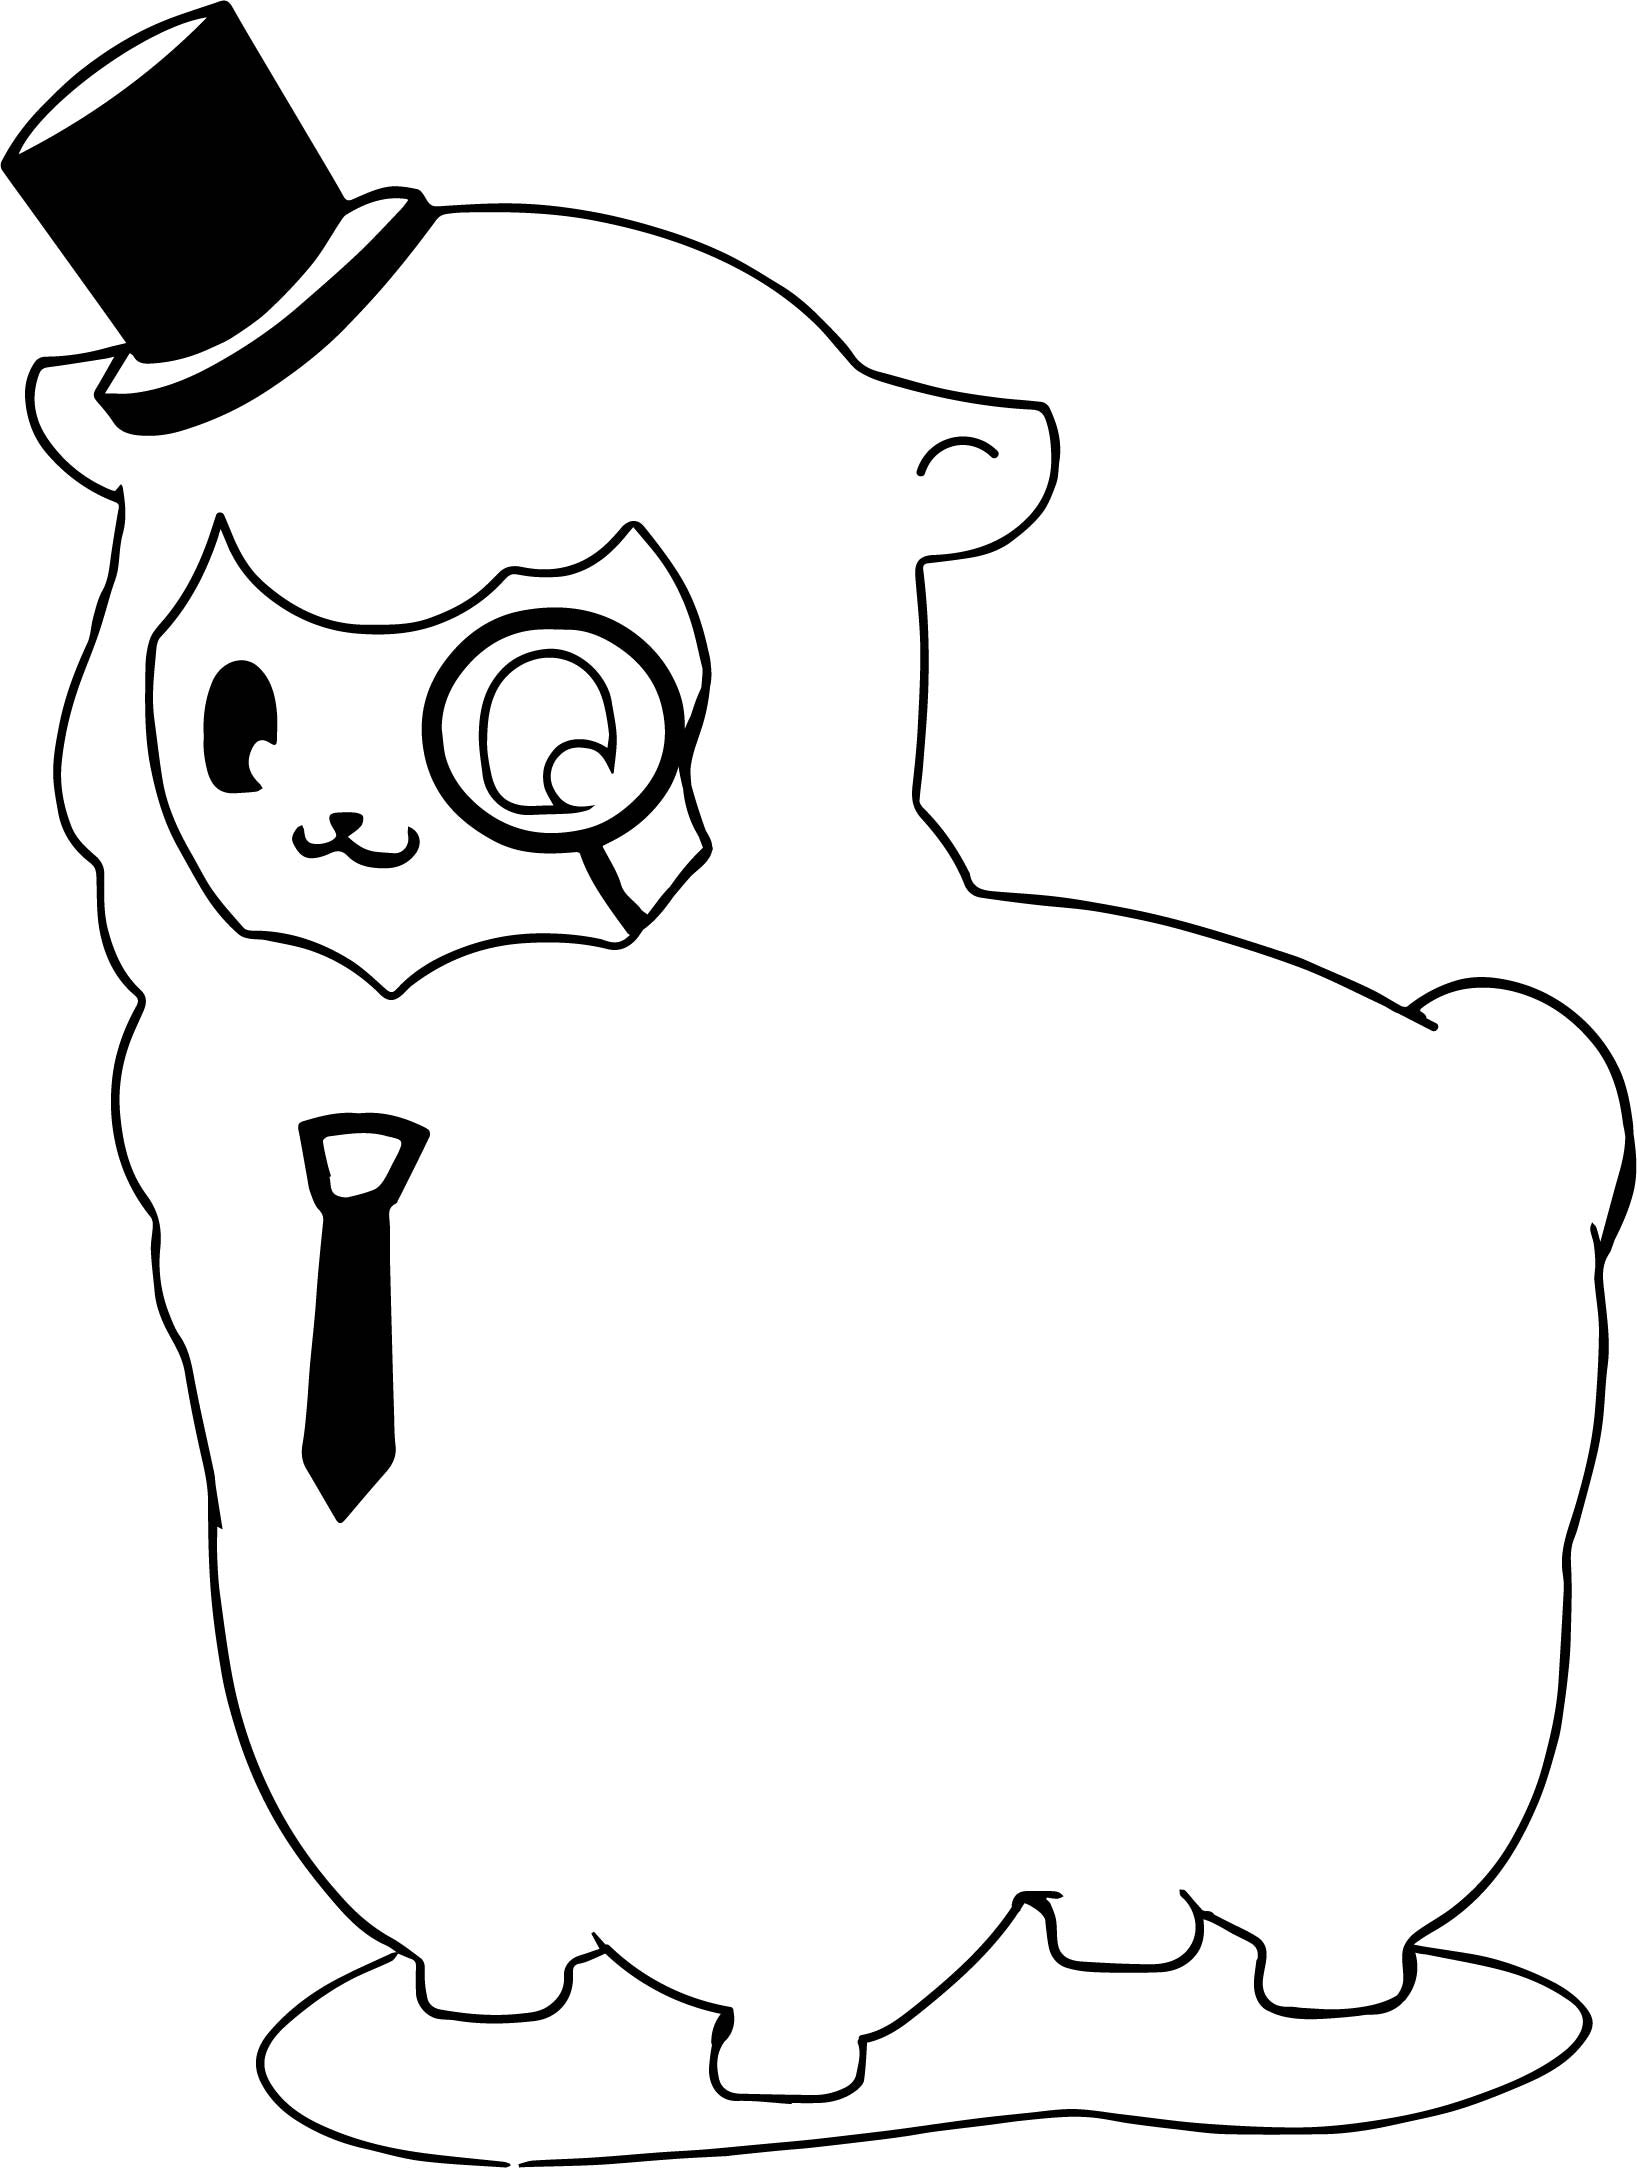 Llama Coloring Pages - Best Coloring Pages For Kids